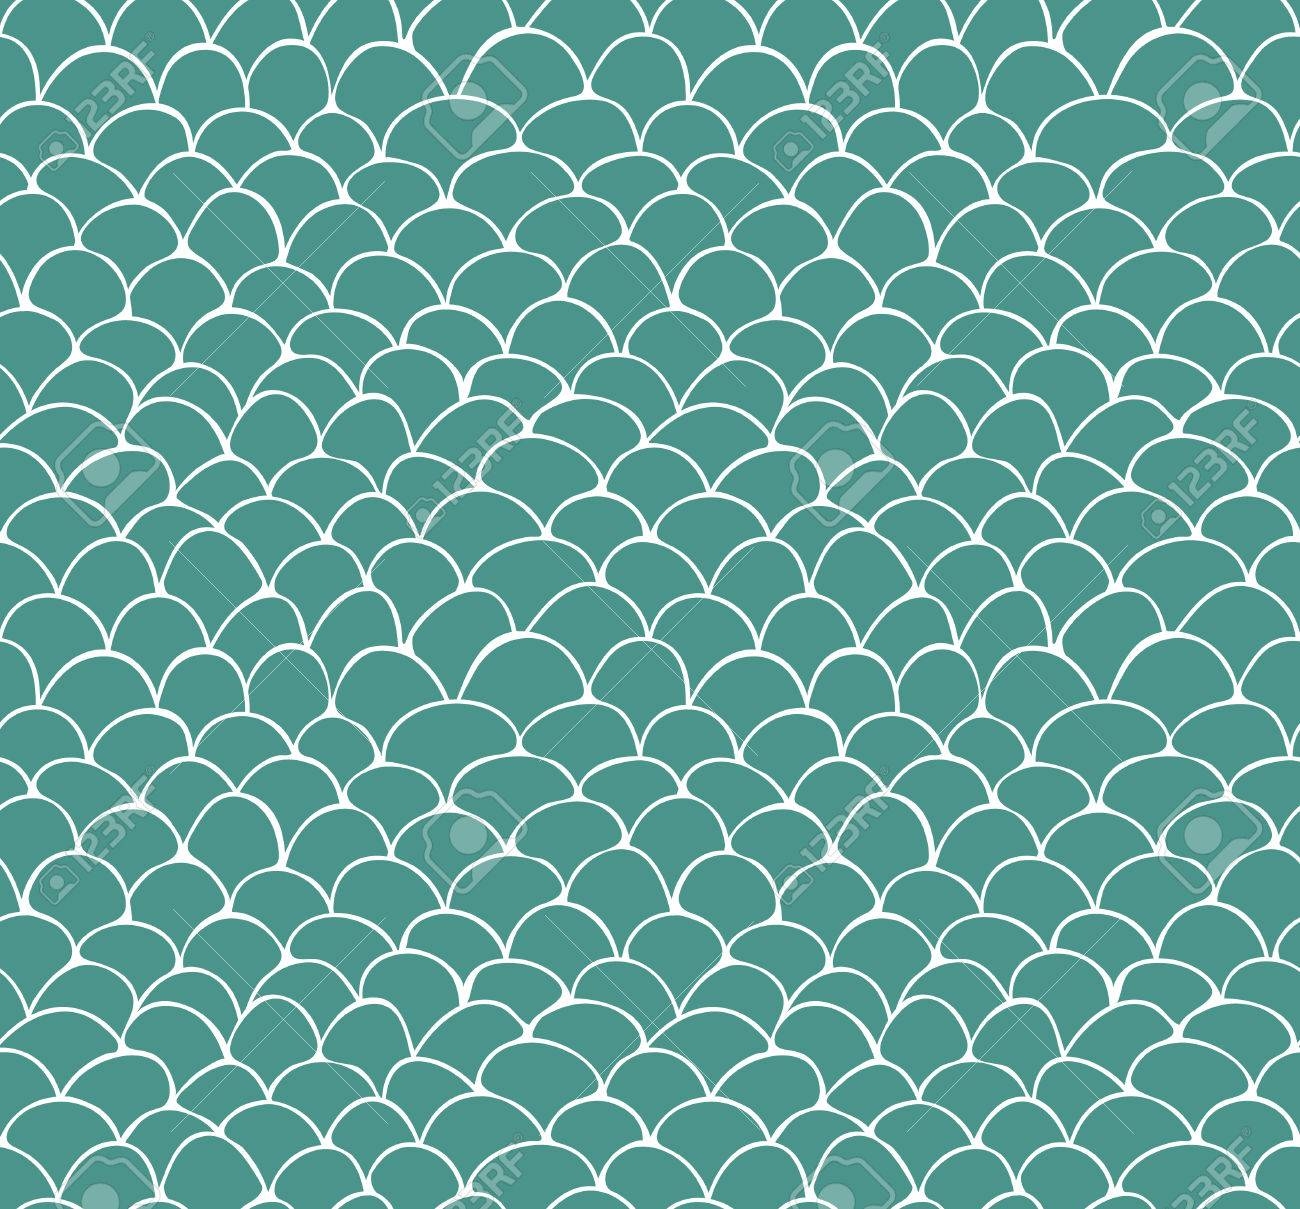 Seamless pattern of hand drawn white scale pattern on green background - 47986490